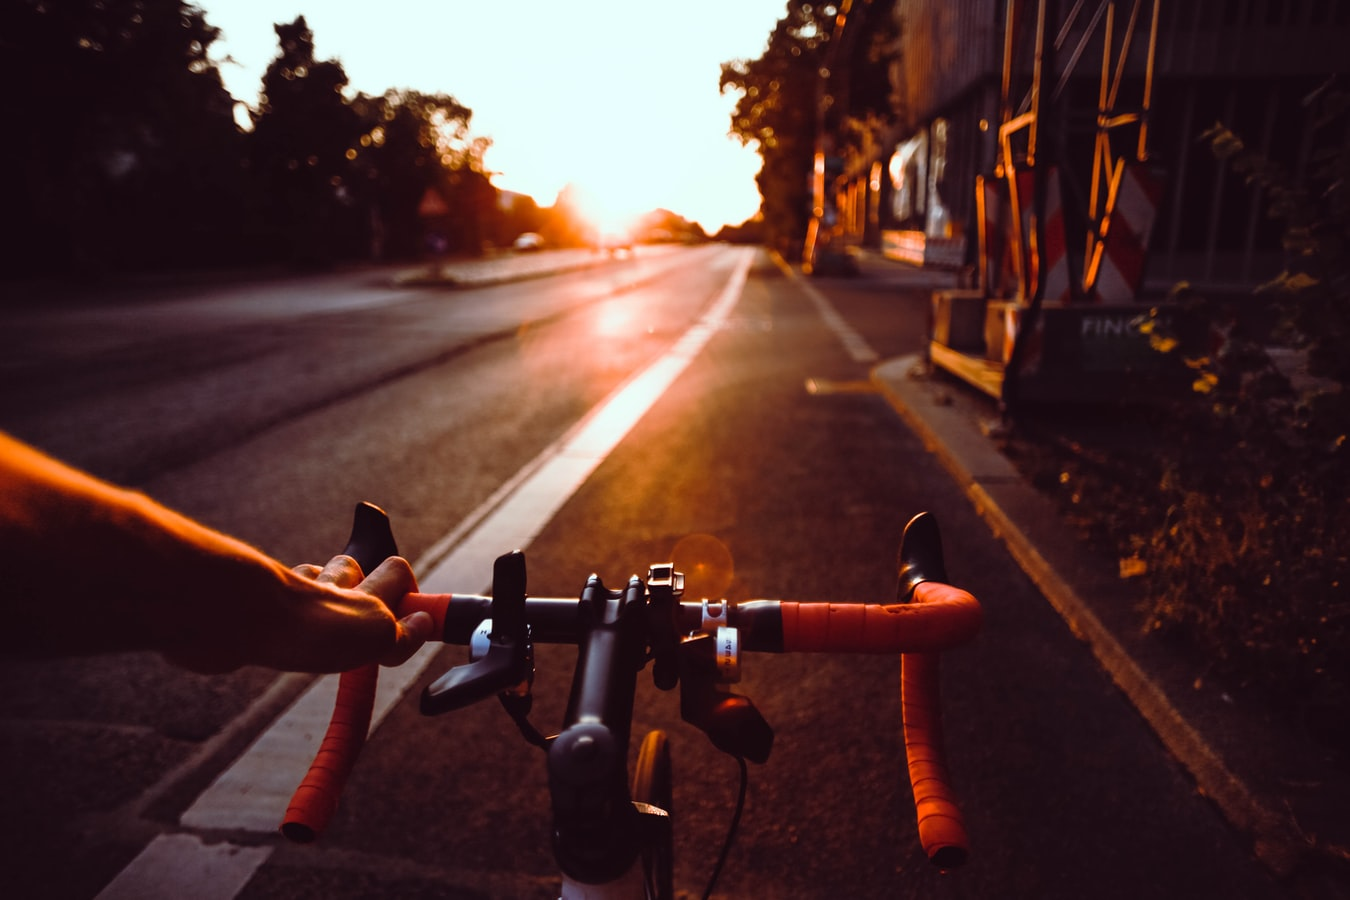 Cycling into the sunset - the view of the road from behind the handle bars.